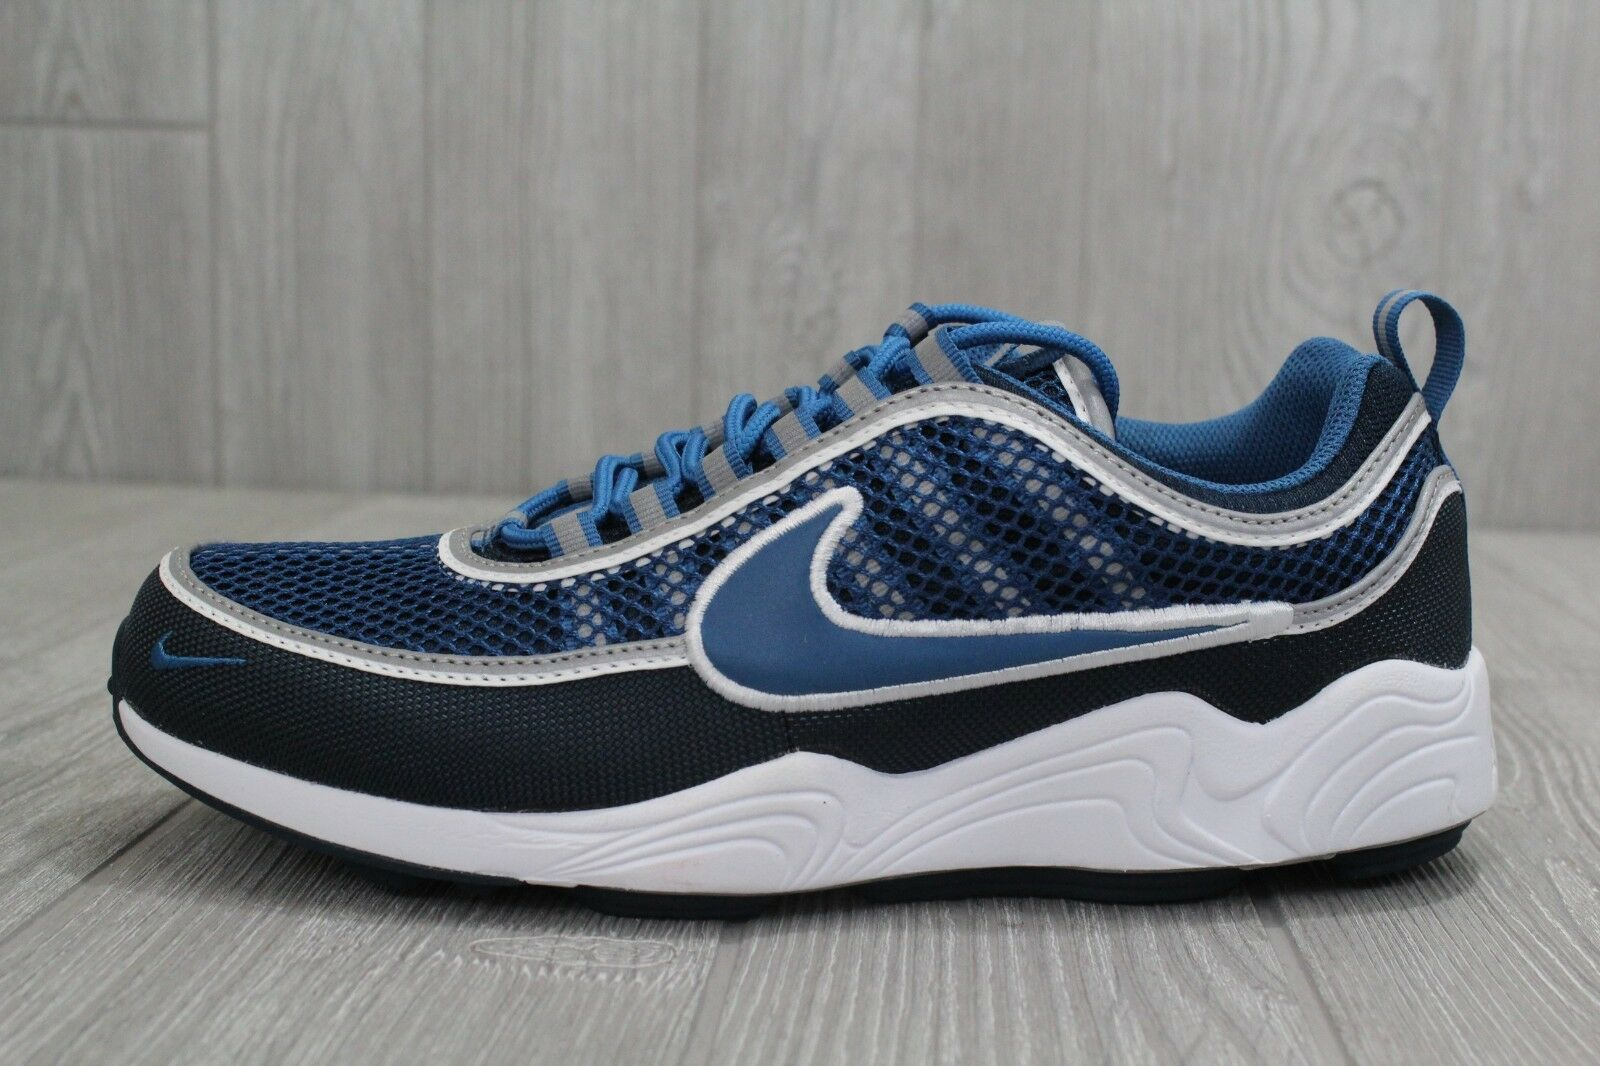 27 Nike Air Zoom Spiridon '16 Mens 926955-400 Armory Navy Running Shoes 8.5-13